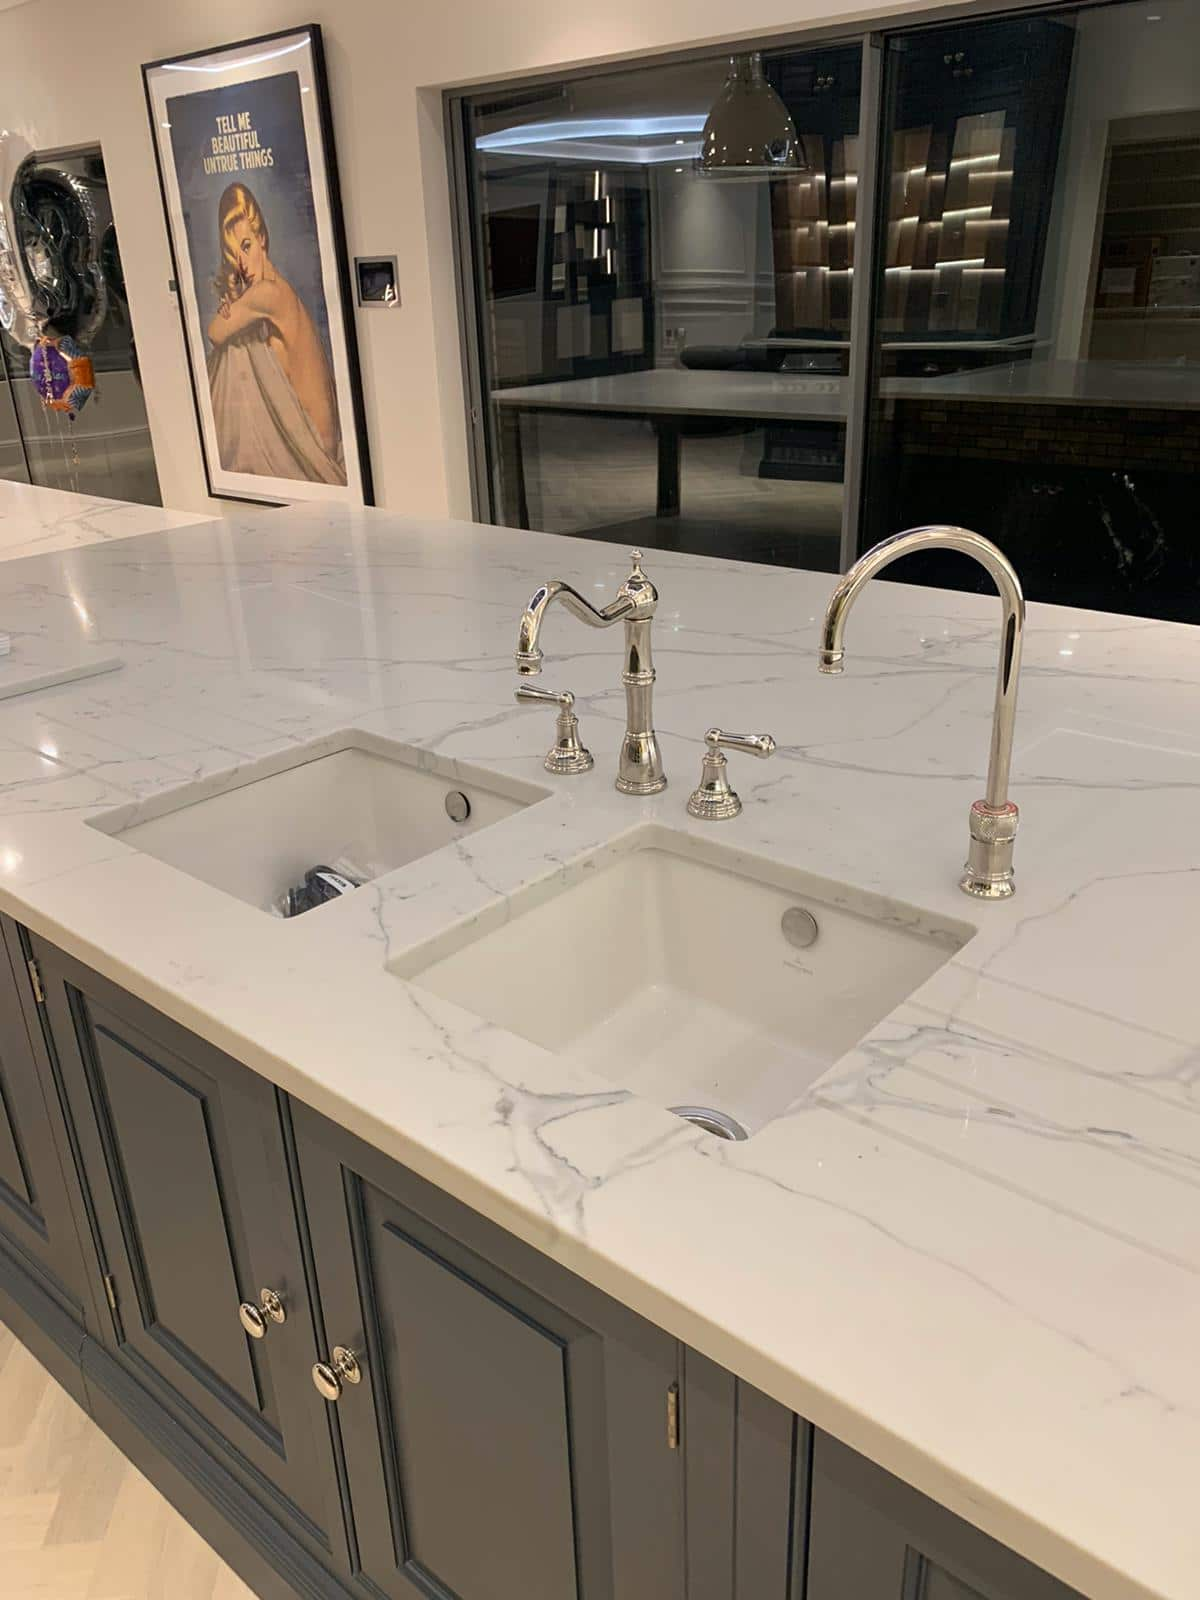 Quartz solid work surface